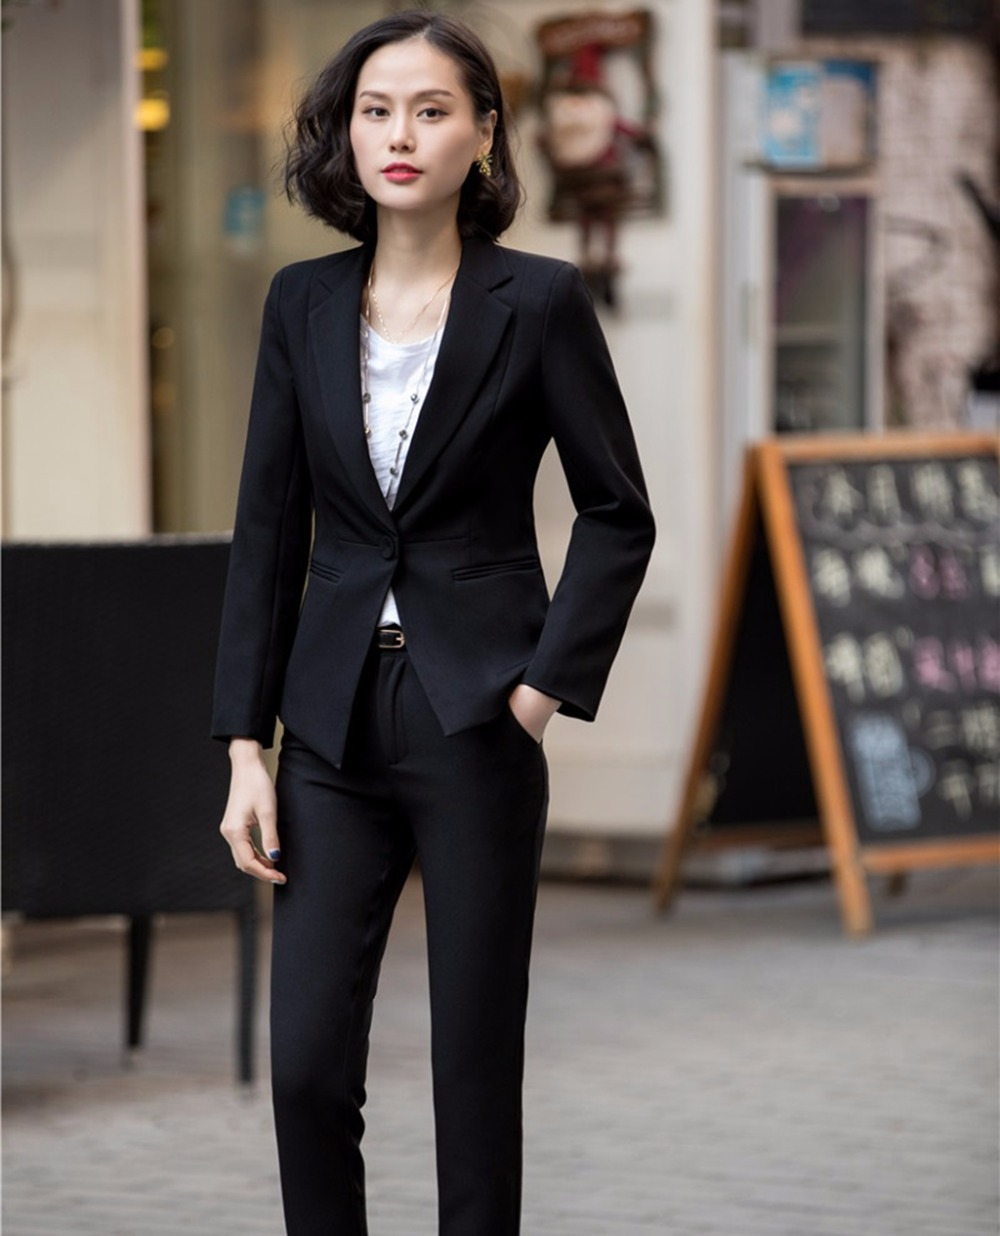 Suits & Sets Custom Royal Blue Work Bussiness Formal Elegant Women Suit Set Blazers Pants Office Suits Ladies Pants Suits Trouser Suit Vivid And Great In Style Back To Search Resultswomen's Clothing